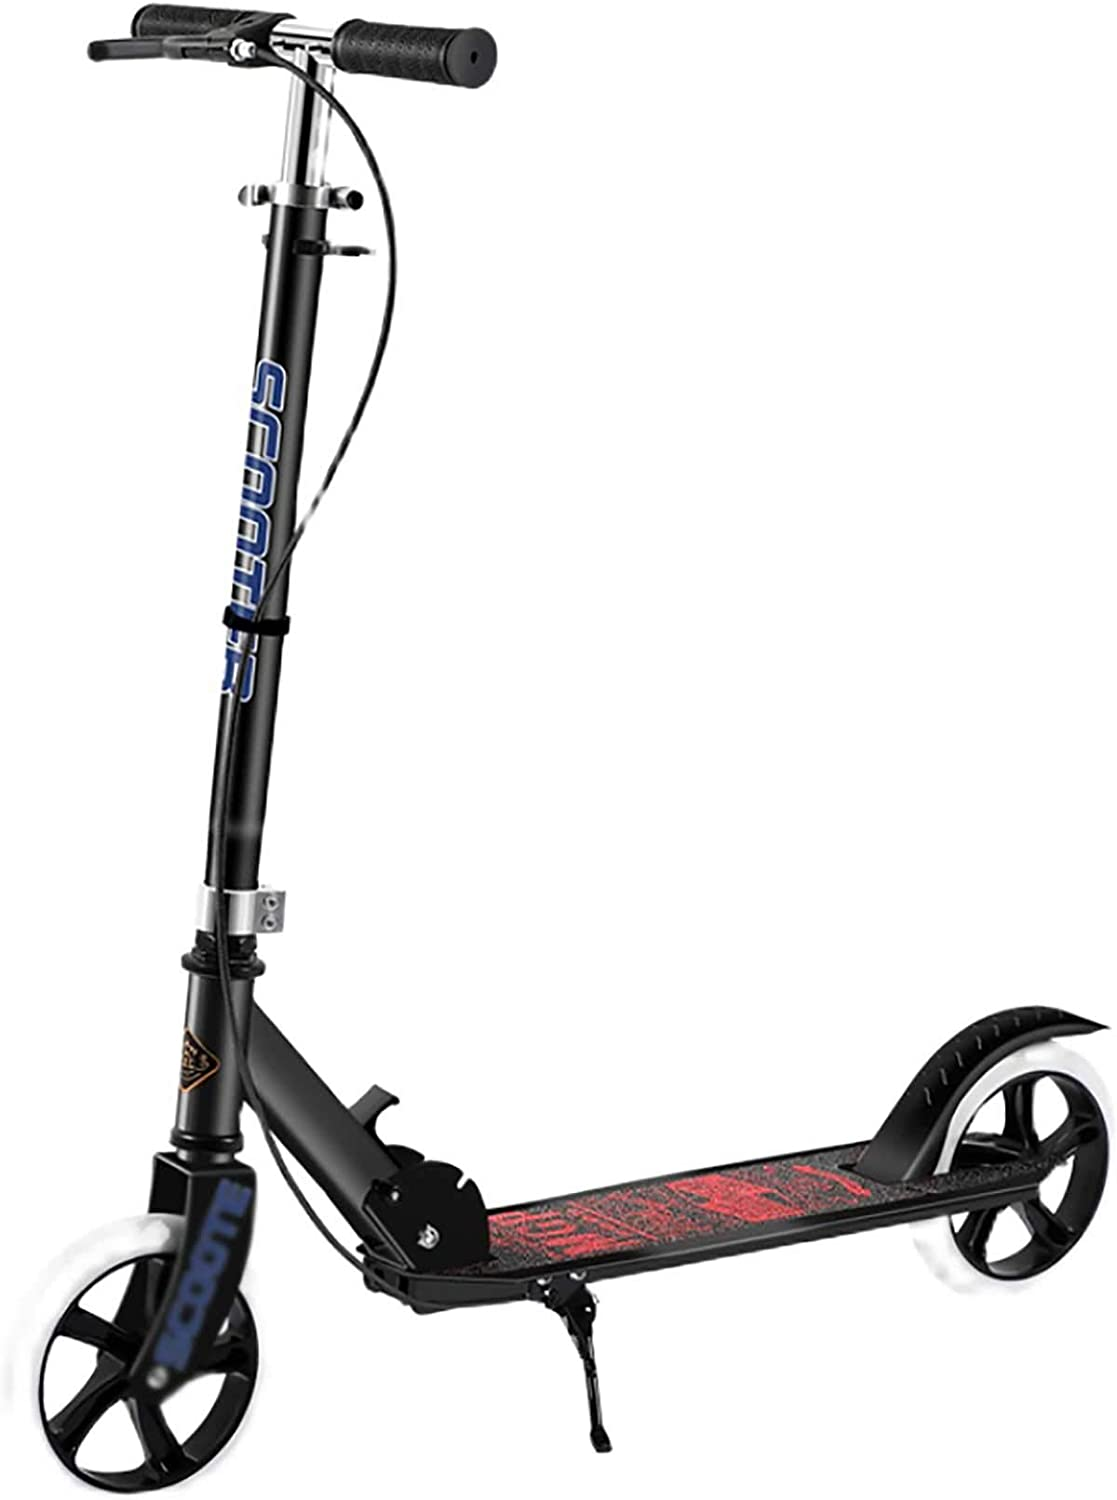 GAOPANG Teens Scooter Kick with sale Folding R SEAL limited product Front